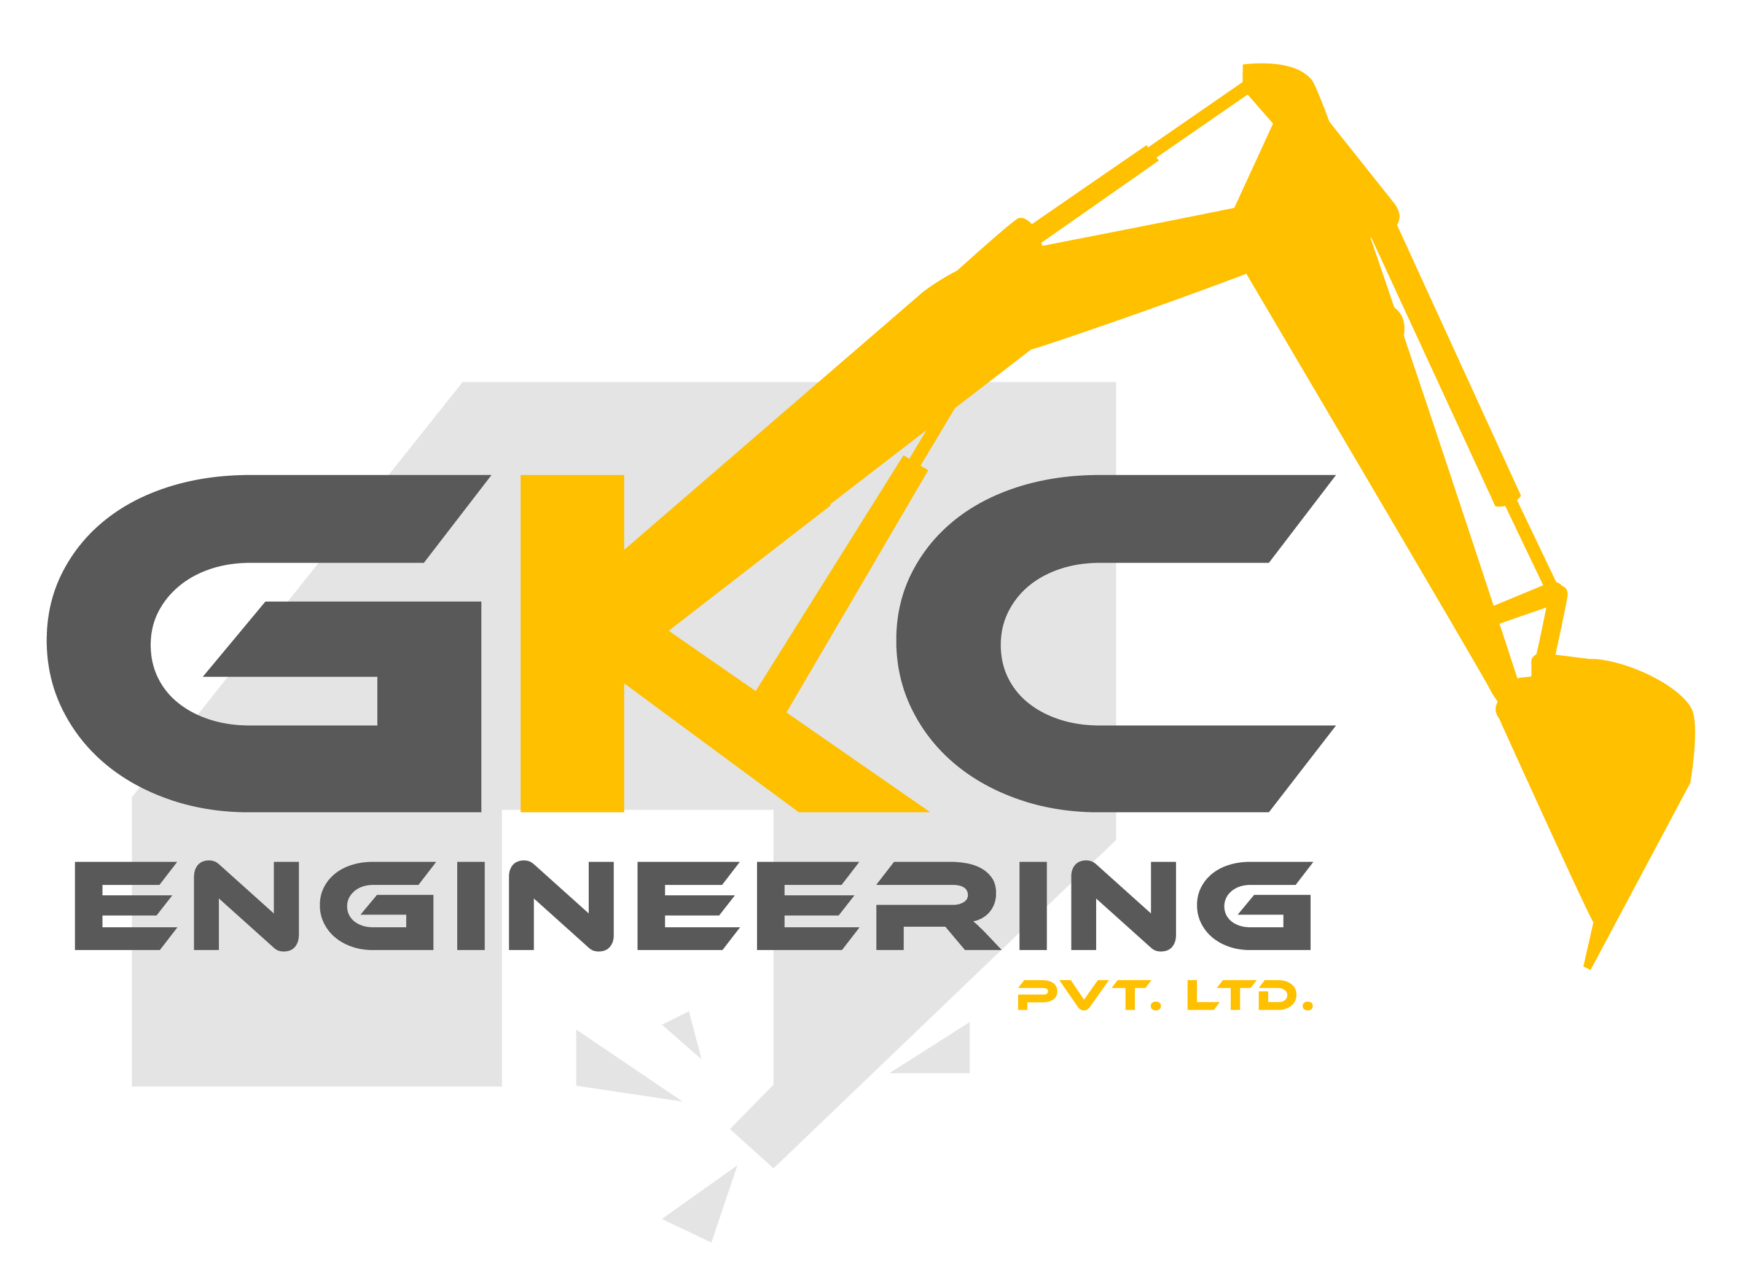 GKC Engineering Private Limited